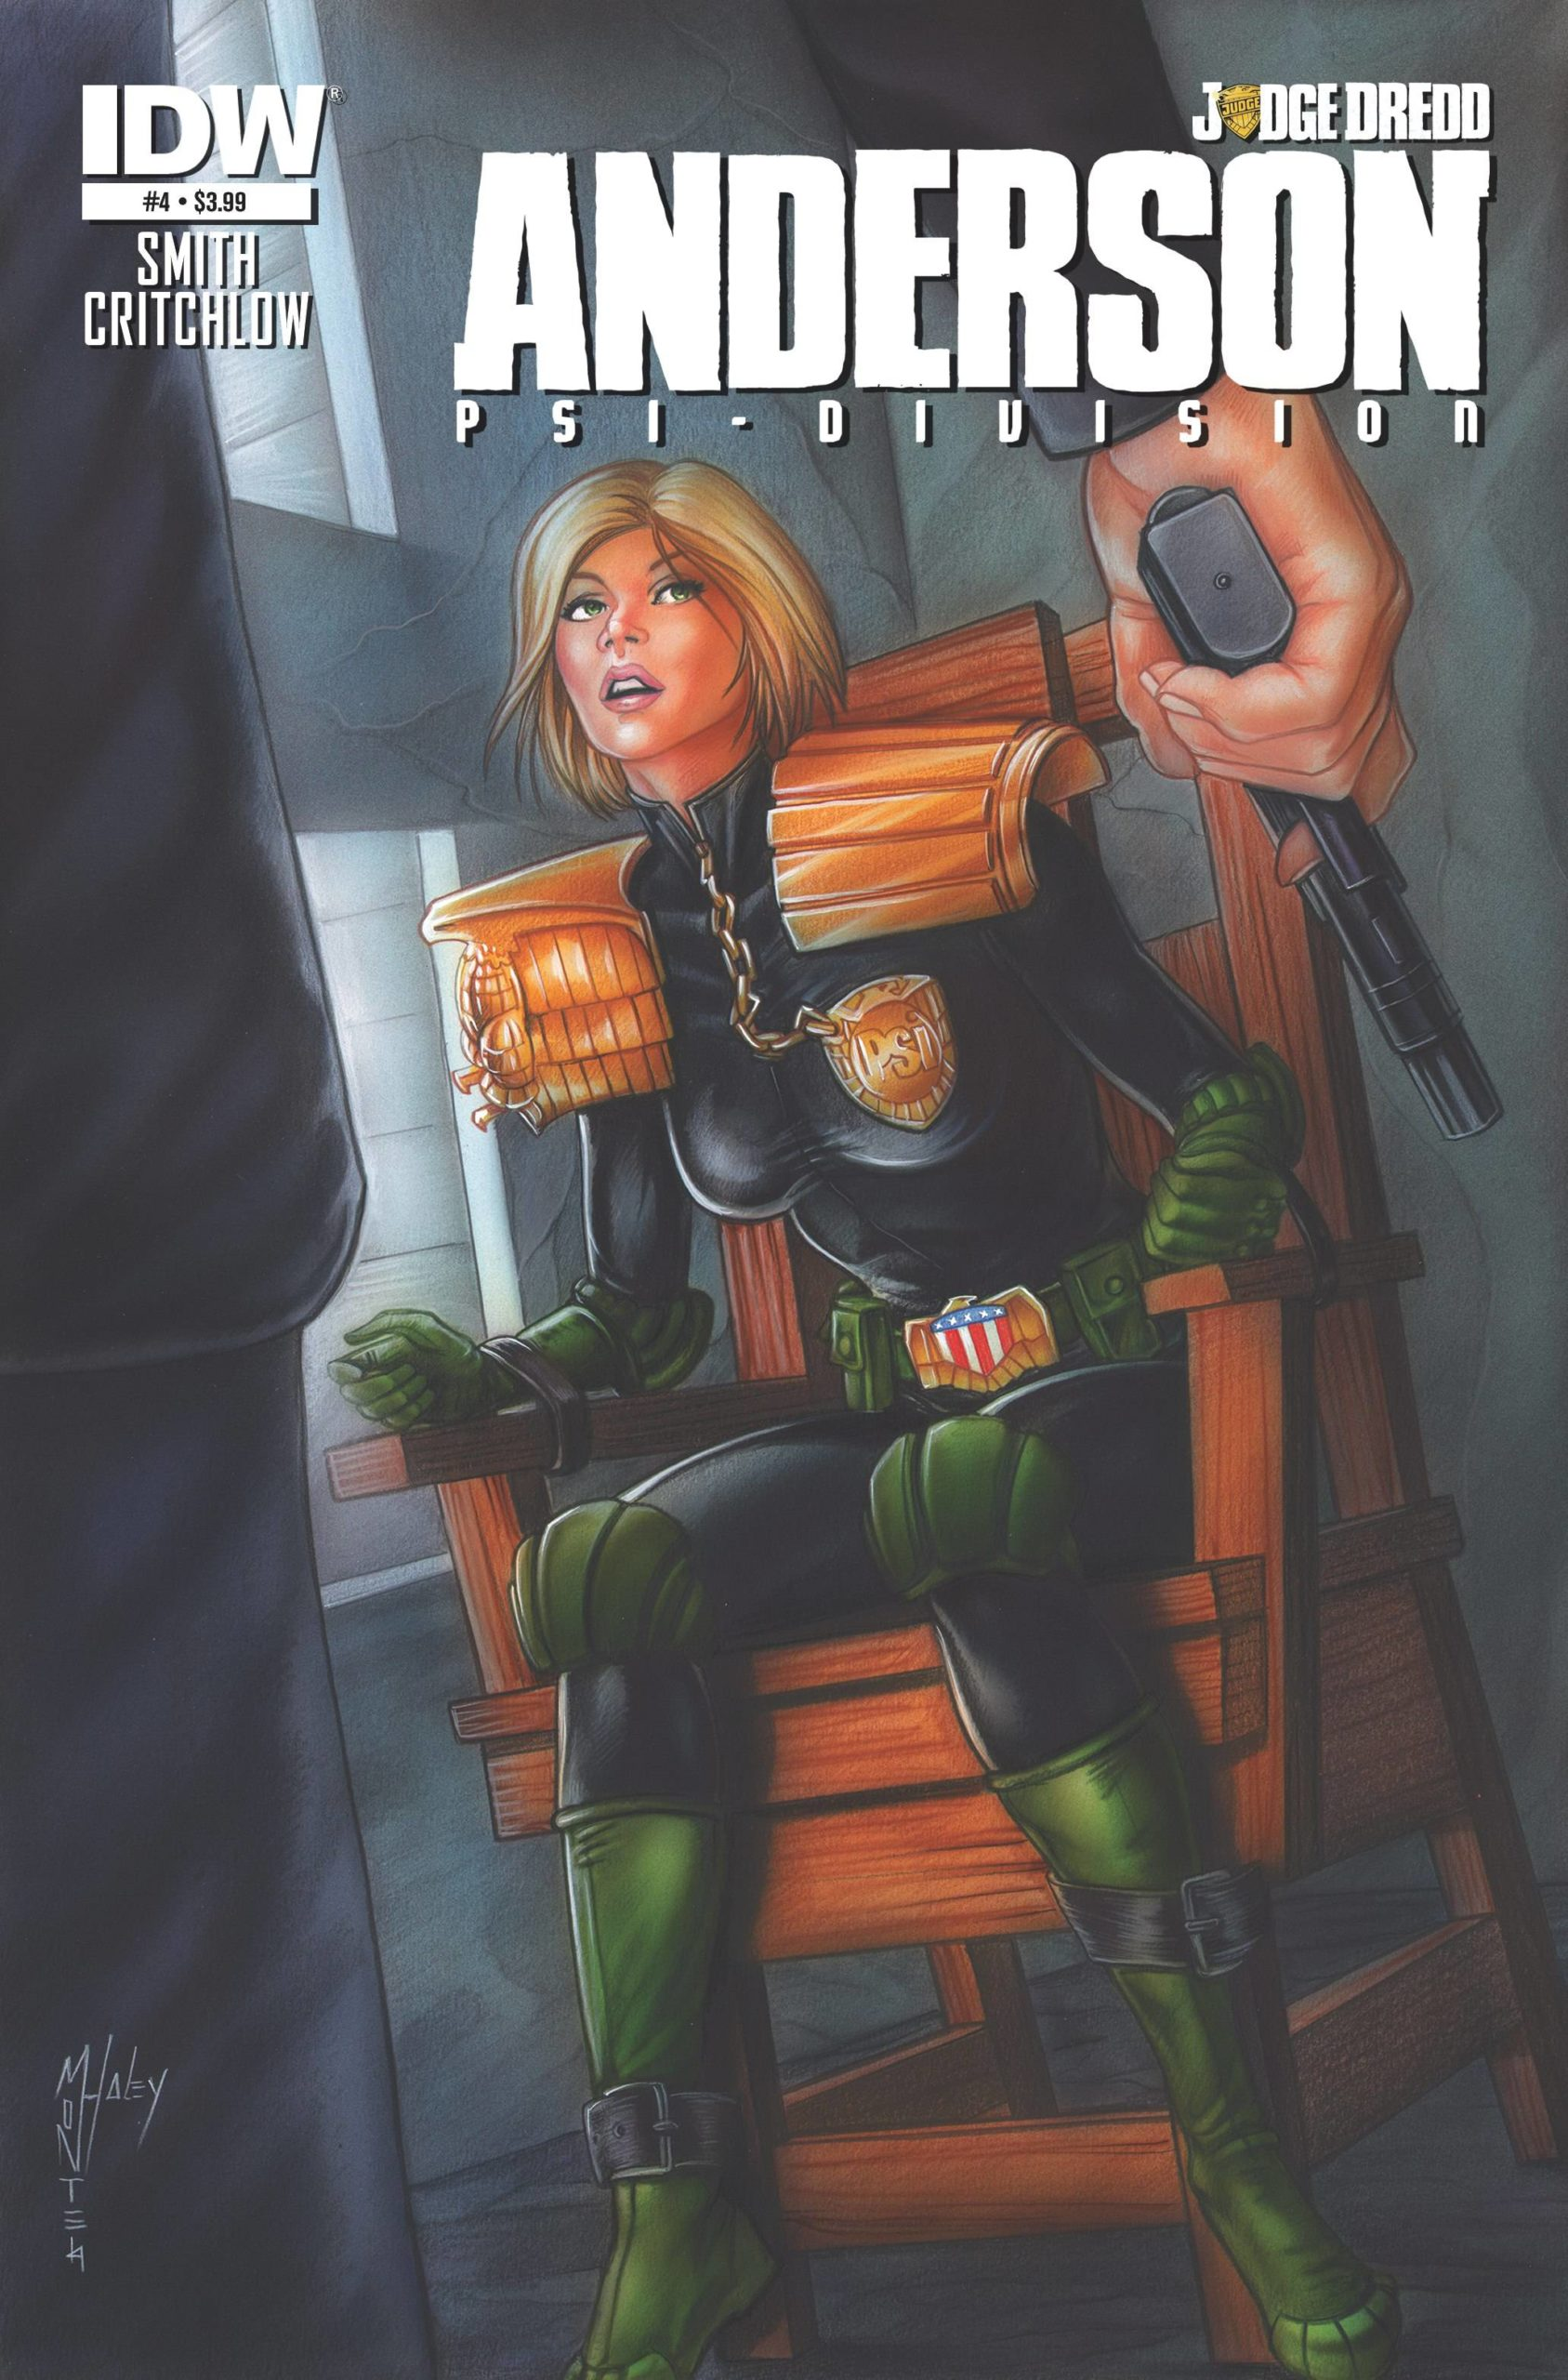 JUDGE DREDD ANDERSON PSI DIVISION